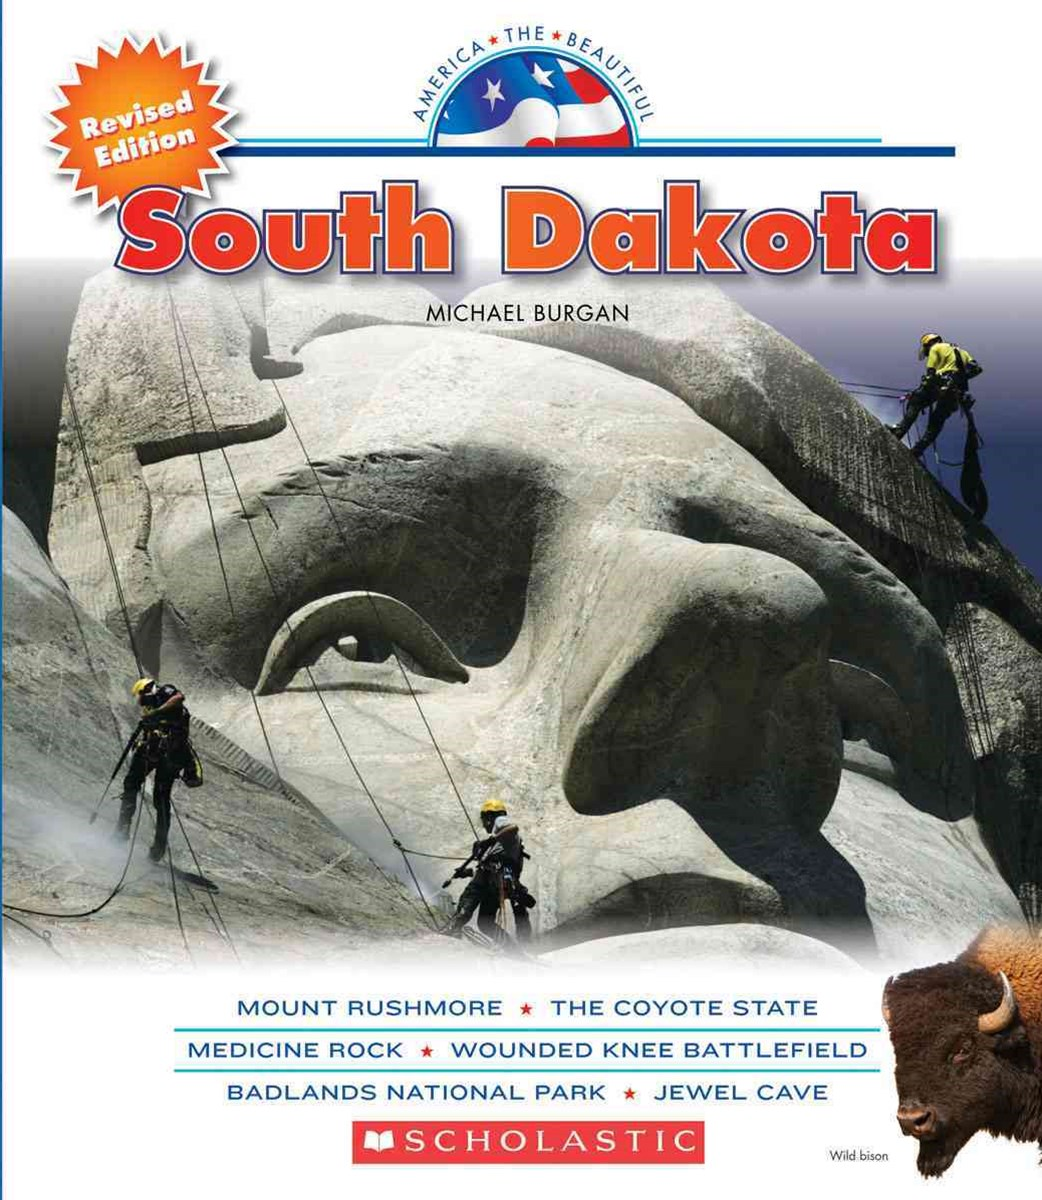 South Dakota (Revised Edition)